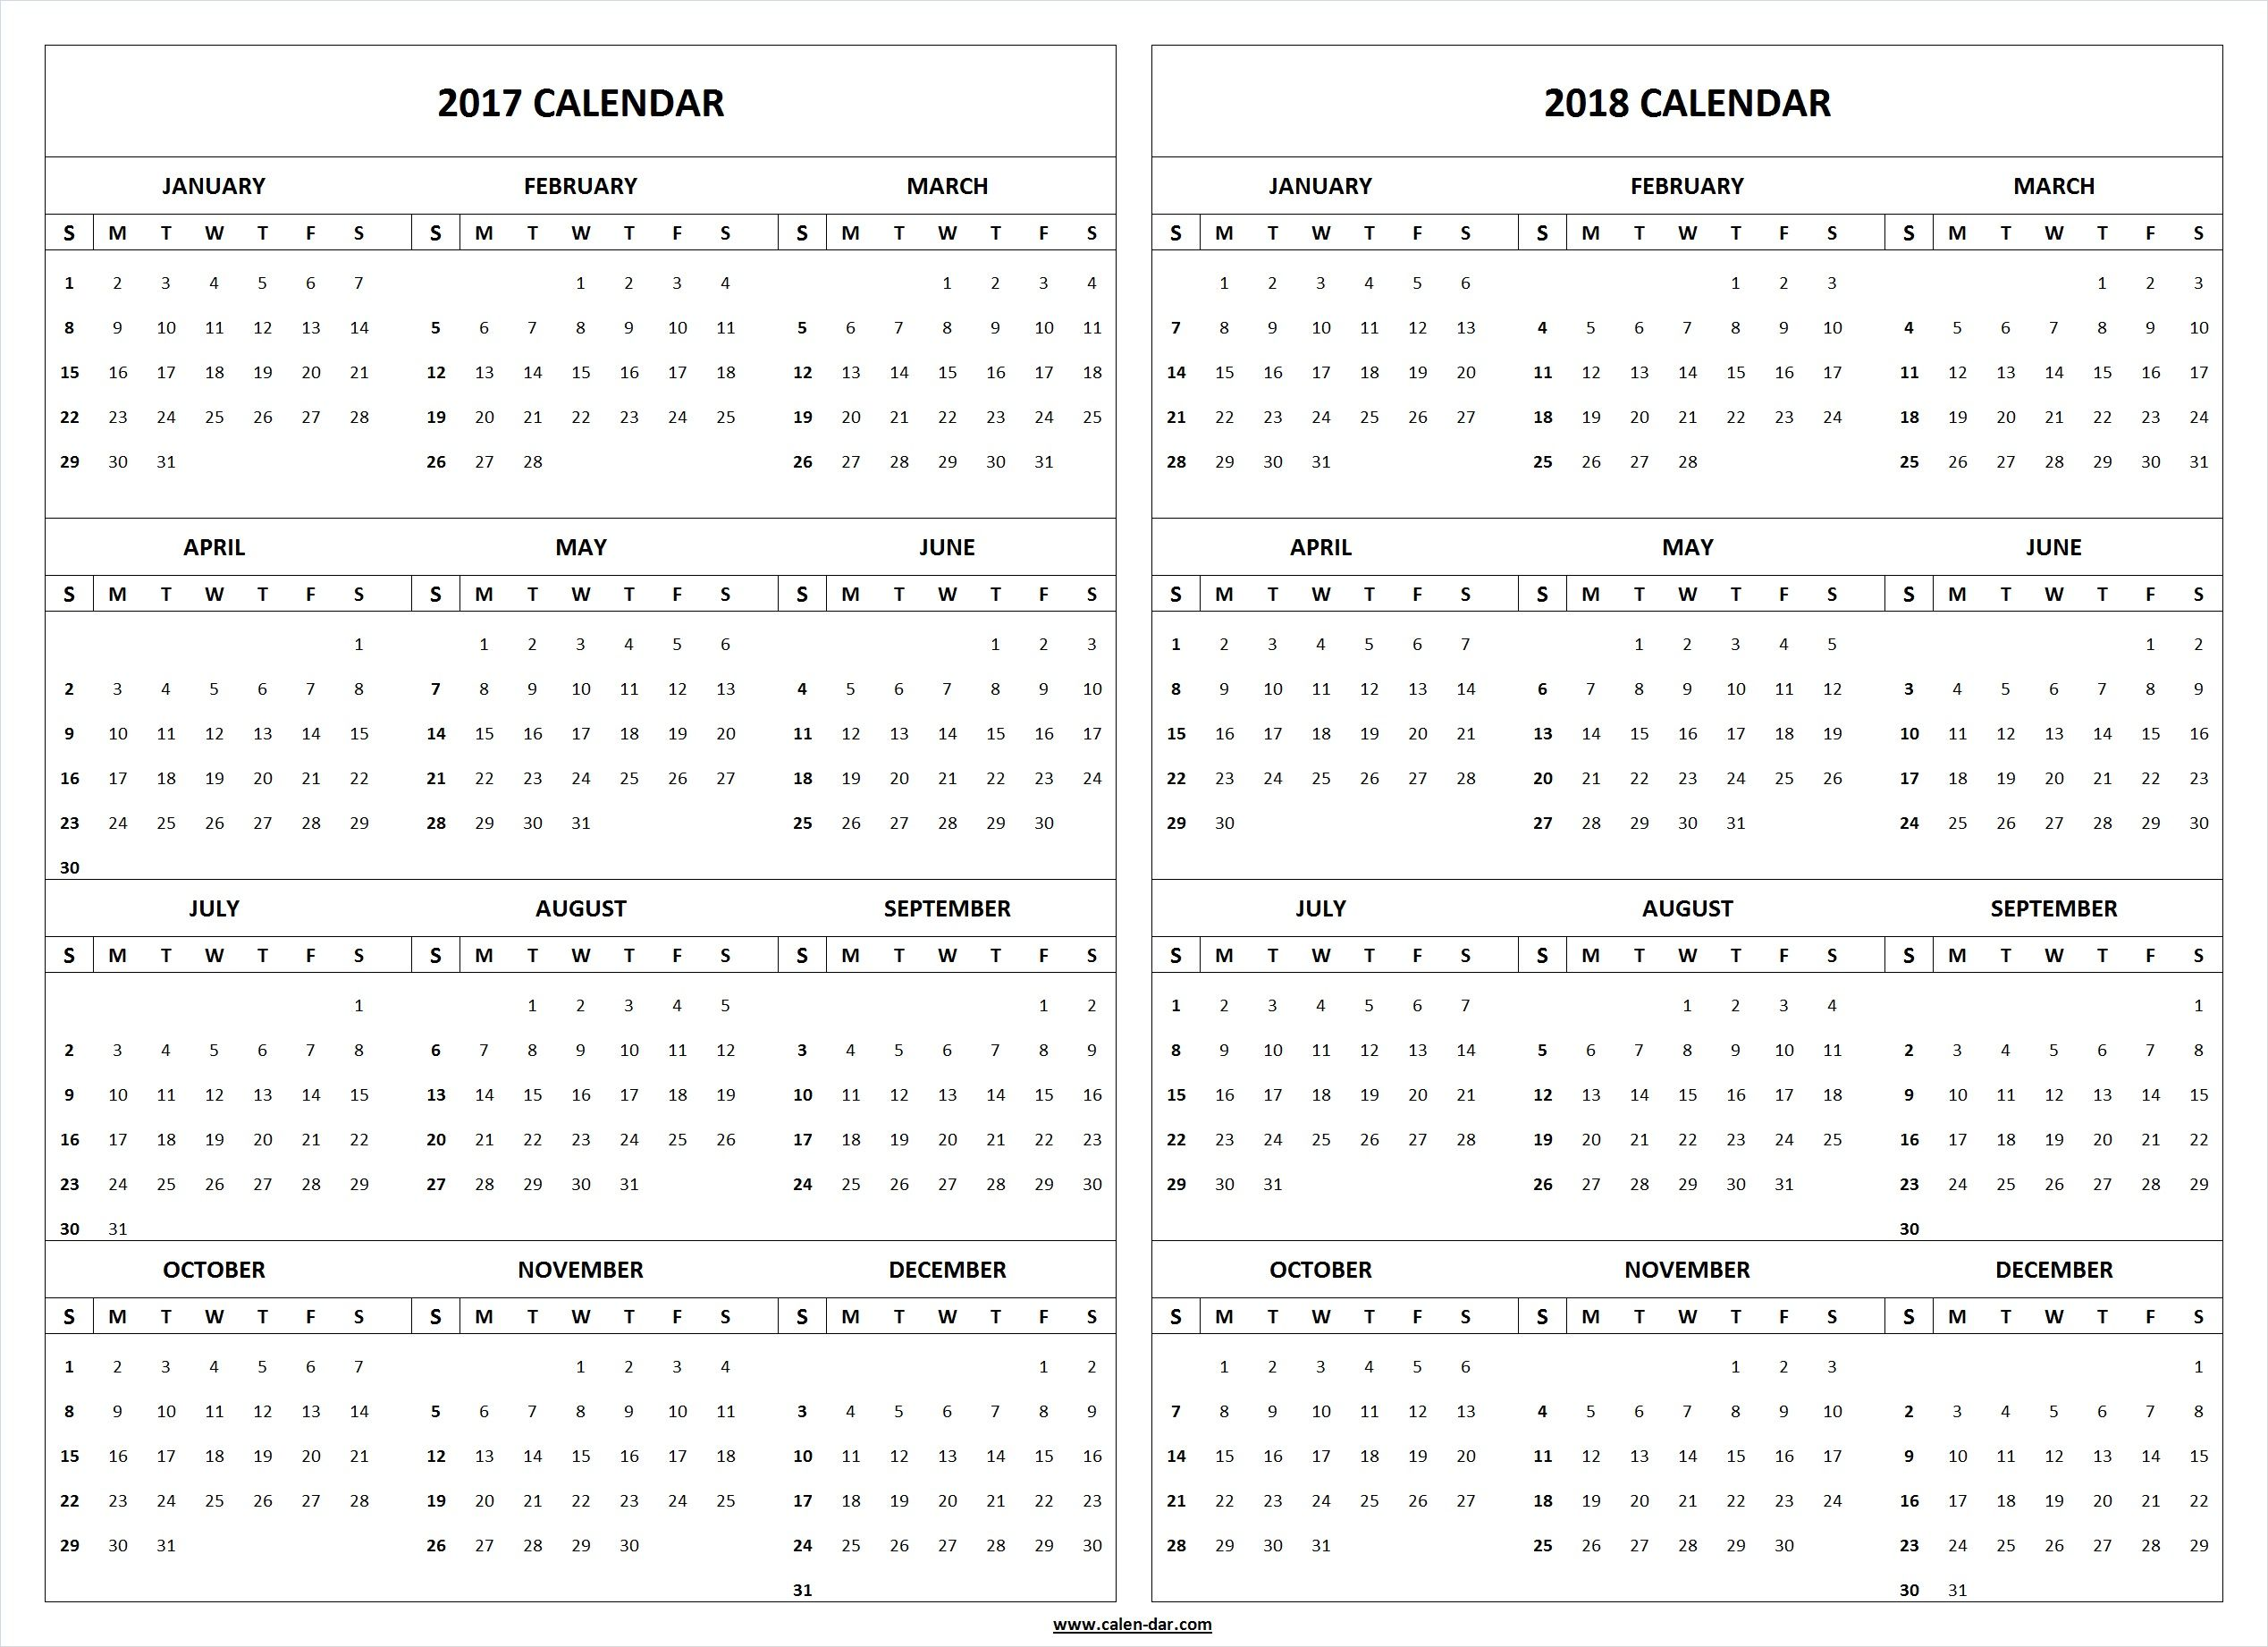 Get free blank printable 2017 2018 calendar template these latest get free blank printable 2017 2018 calendar template these latest editable 2017 and 2018 calendar pronofoot35fo Images